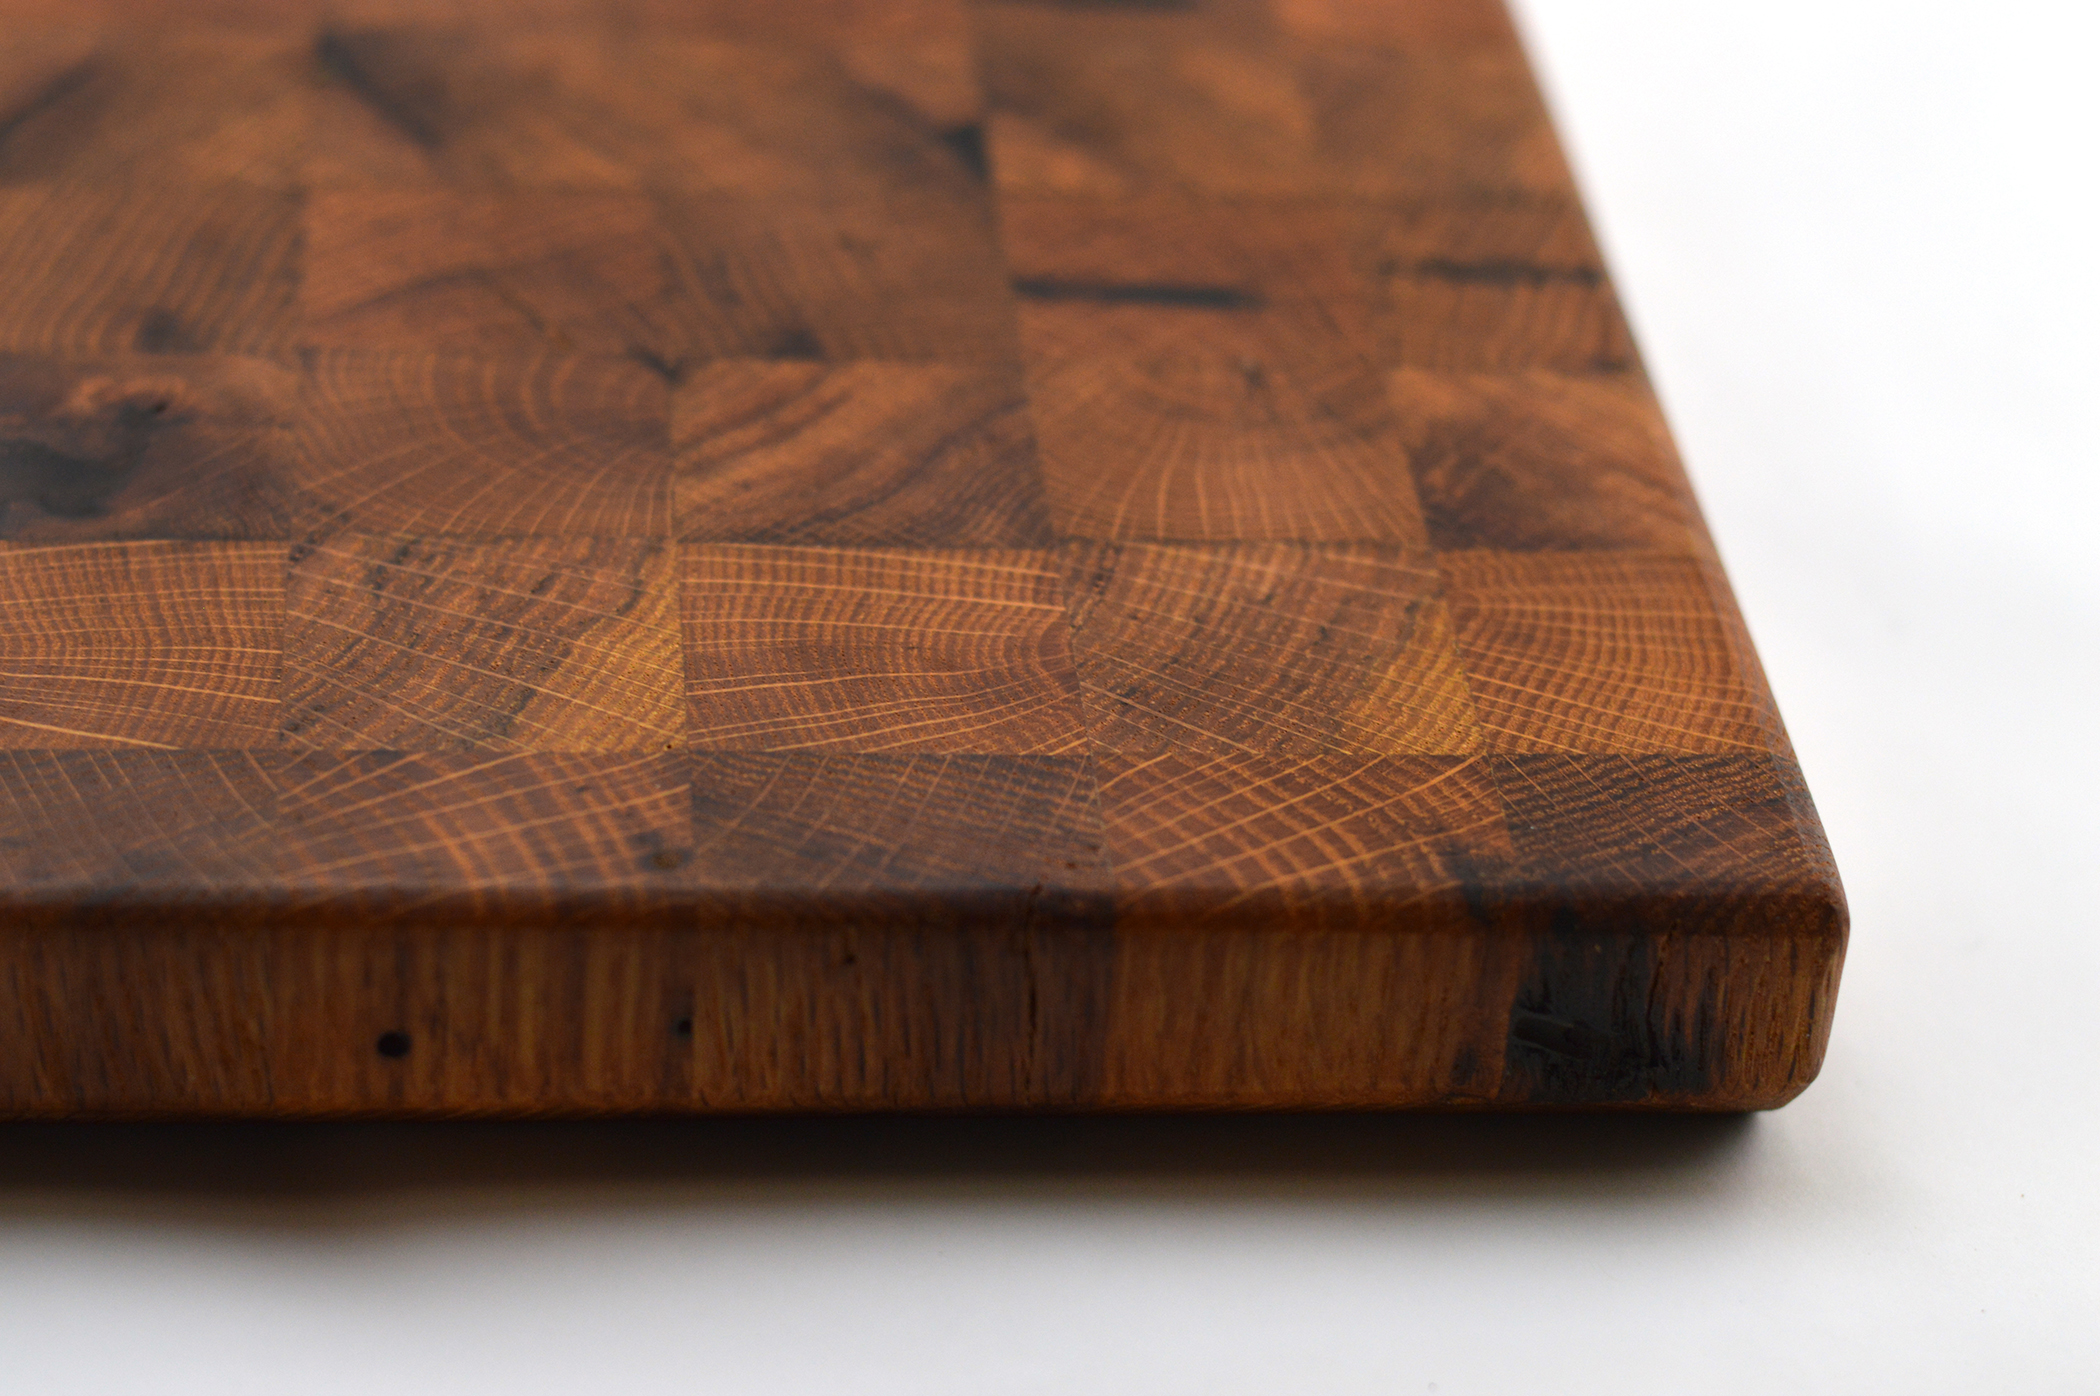 Cutting Boards - In order to get the most use out of every piece of wood, we create sturdy cutting boards out of leftover pieces of wood.